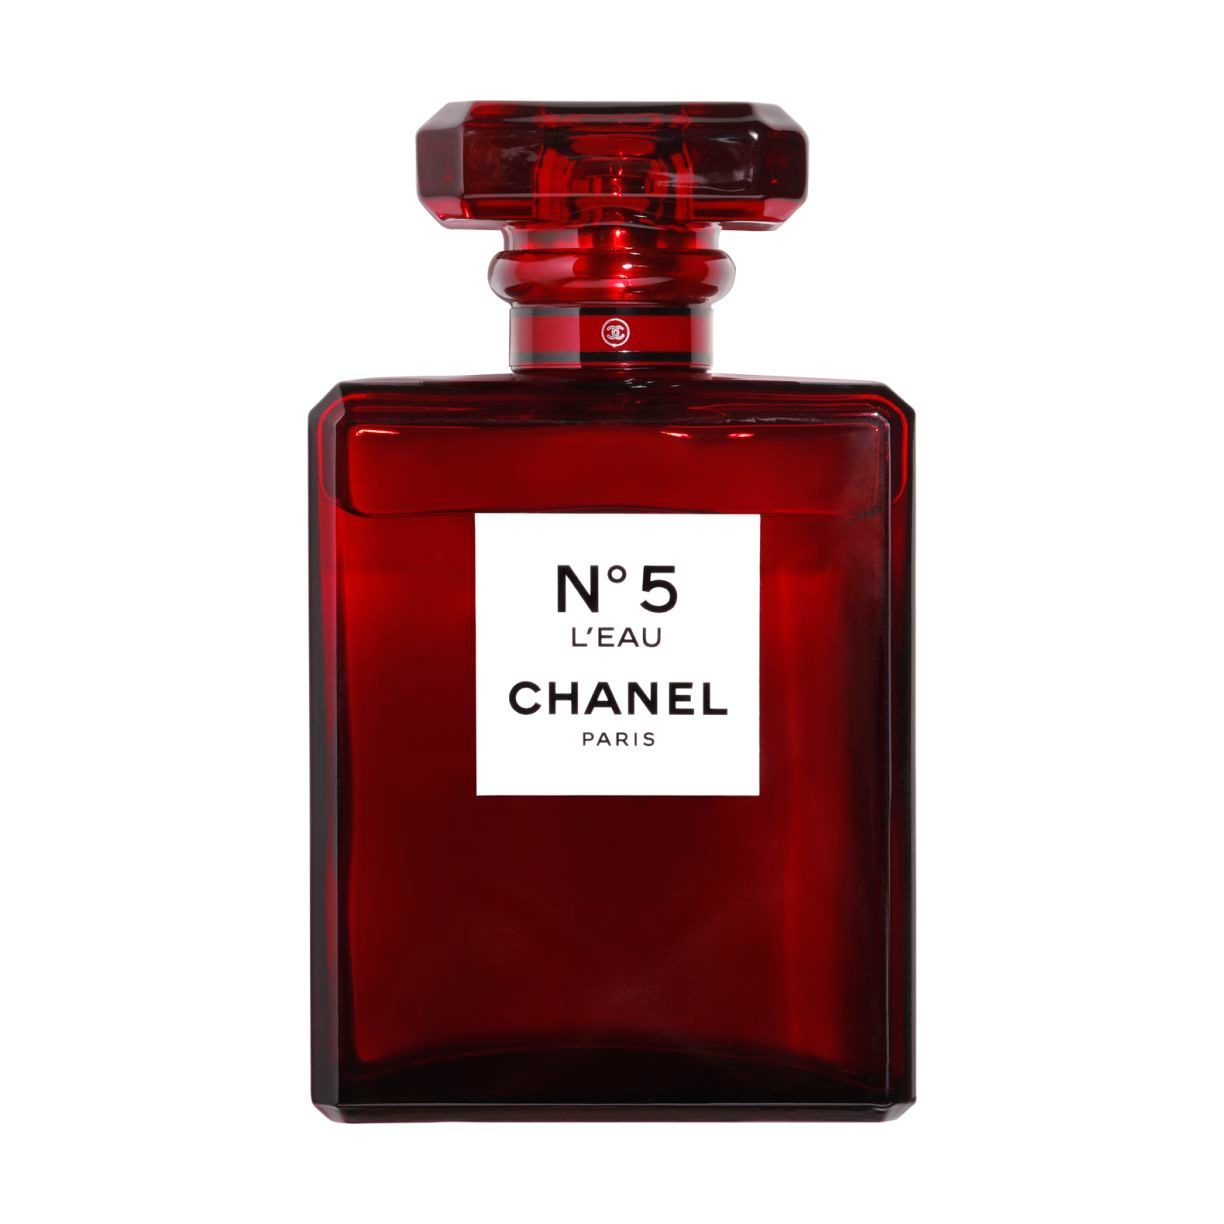 N°5 L'EAU EAU DE TOILETTE LIMITED EDITION